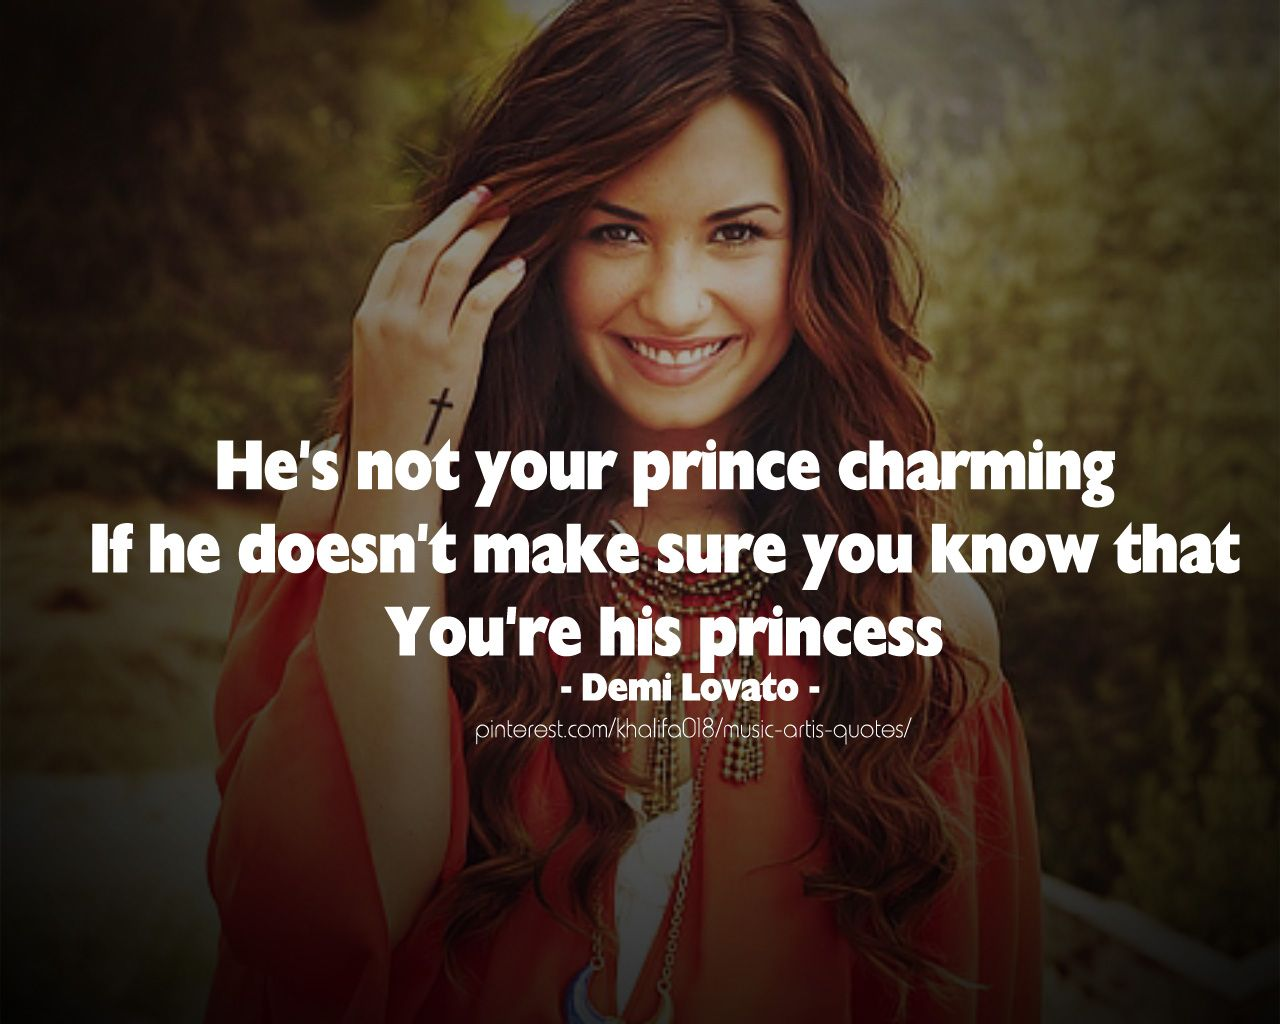 16 best demi lovato quotes images on pinterest demi lovato discover and share demi lovato depression quotes explore our collection of motivational and famous quotes by authors you know and love voltagebd Gallery